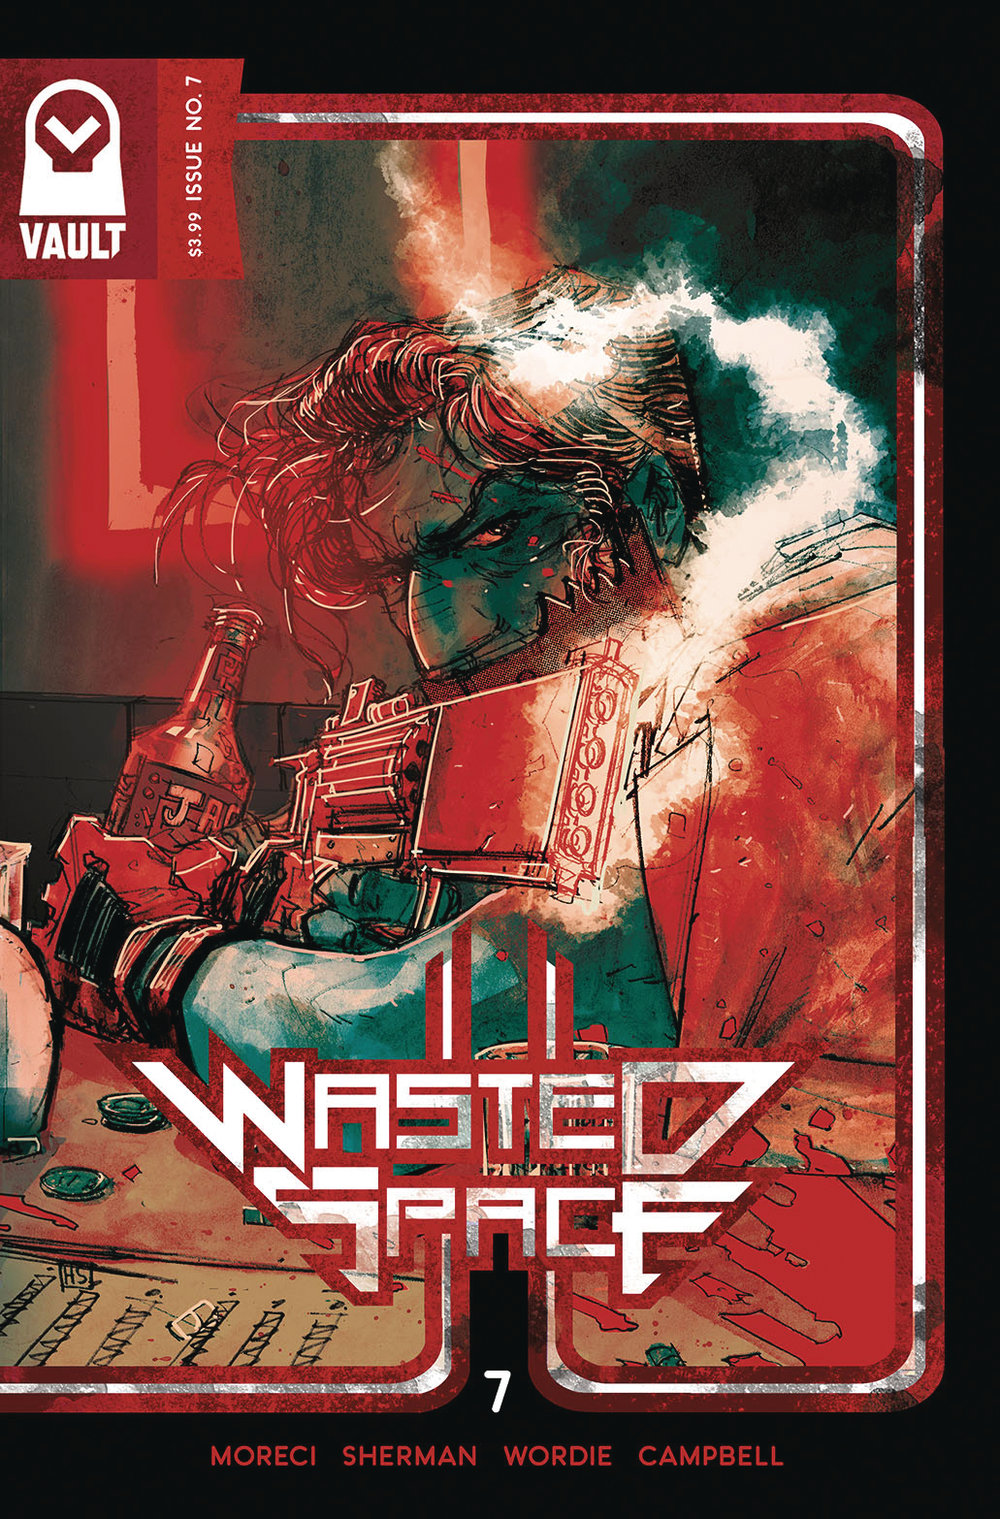 Wasted Space #7  is out 2/27/2019.